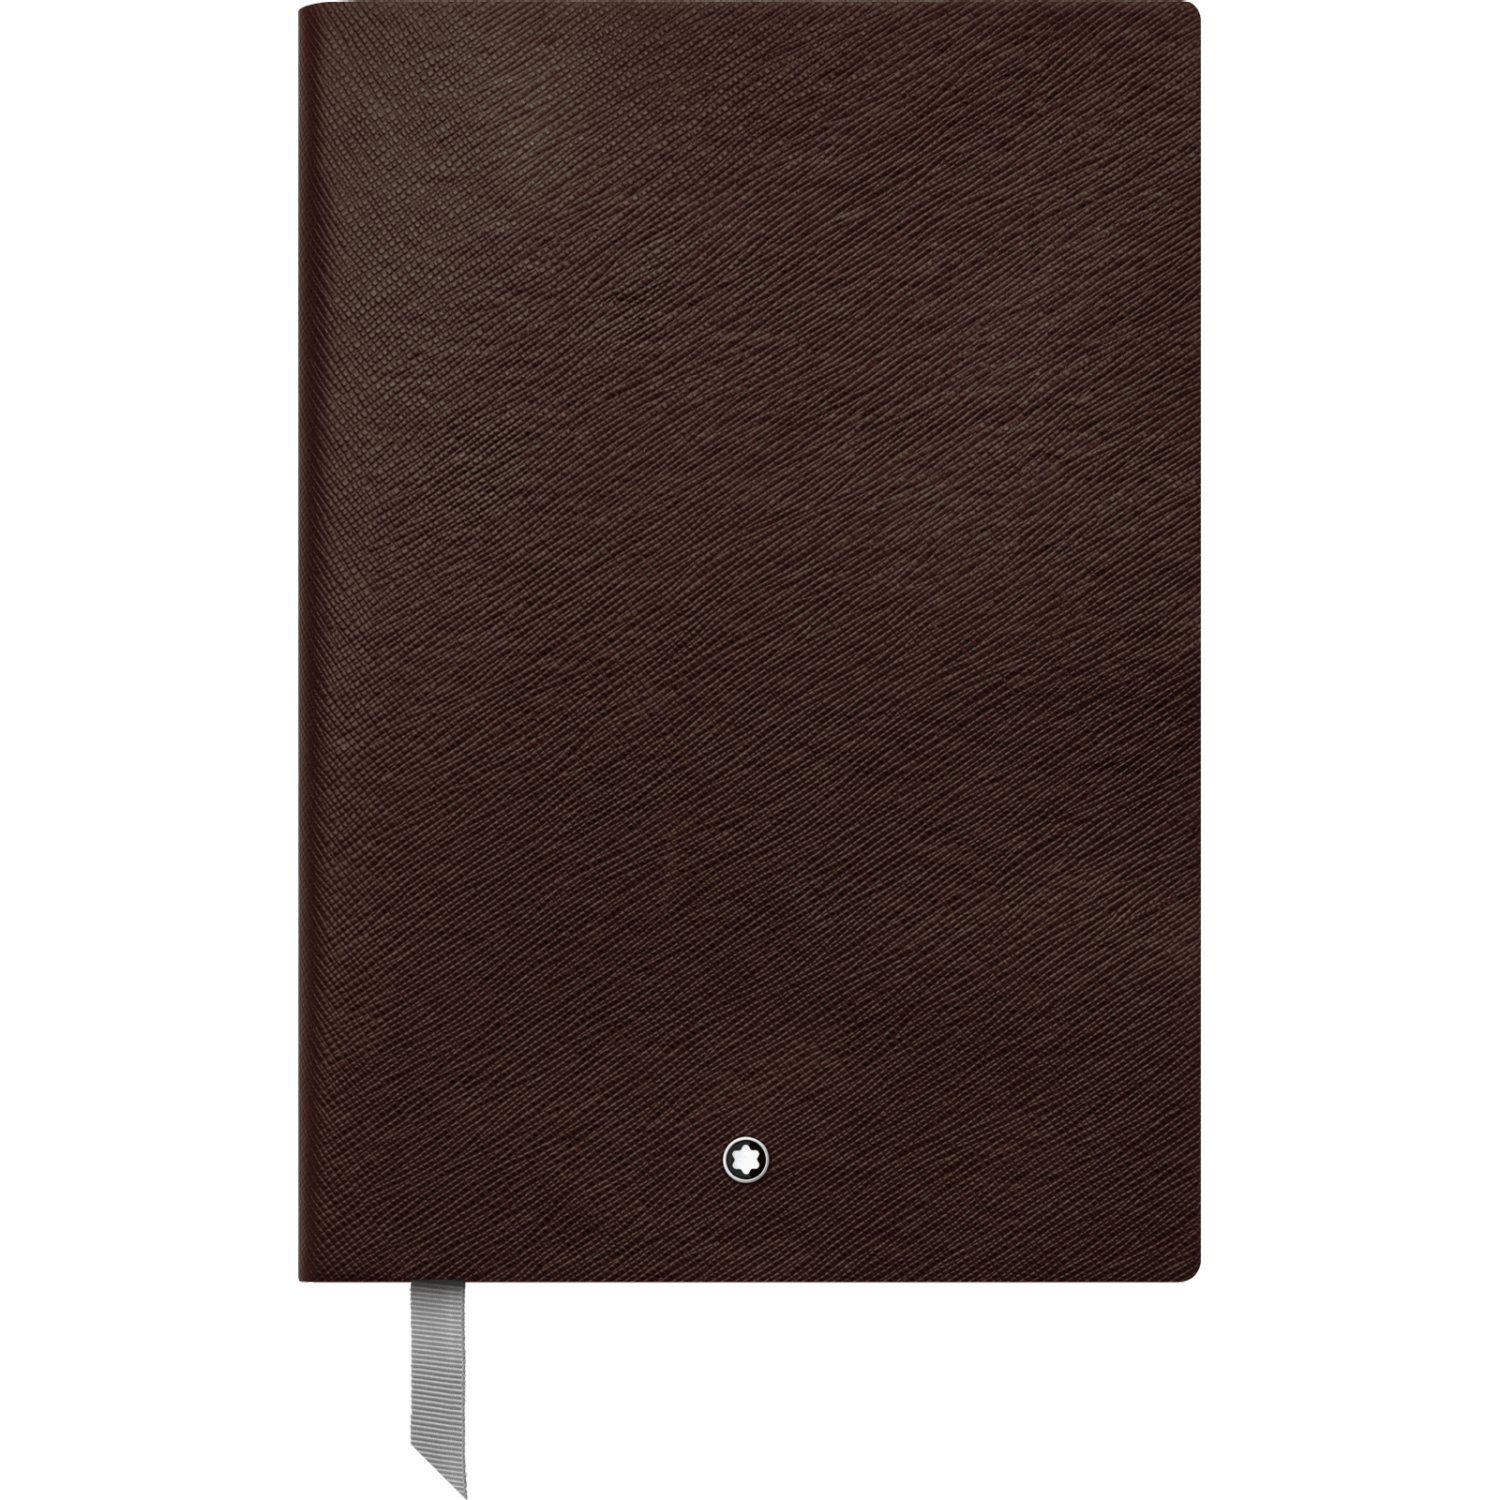 Montblanc Notebook Tobacco Squared #146 Fine Stationery 113638 / Elegant Journal with Leather Binding and Quadrille Pages / 1 x (5.9 x 8.2 in.)